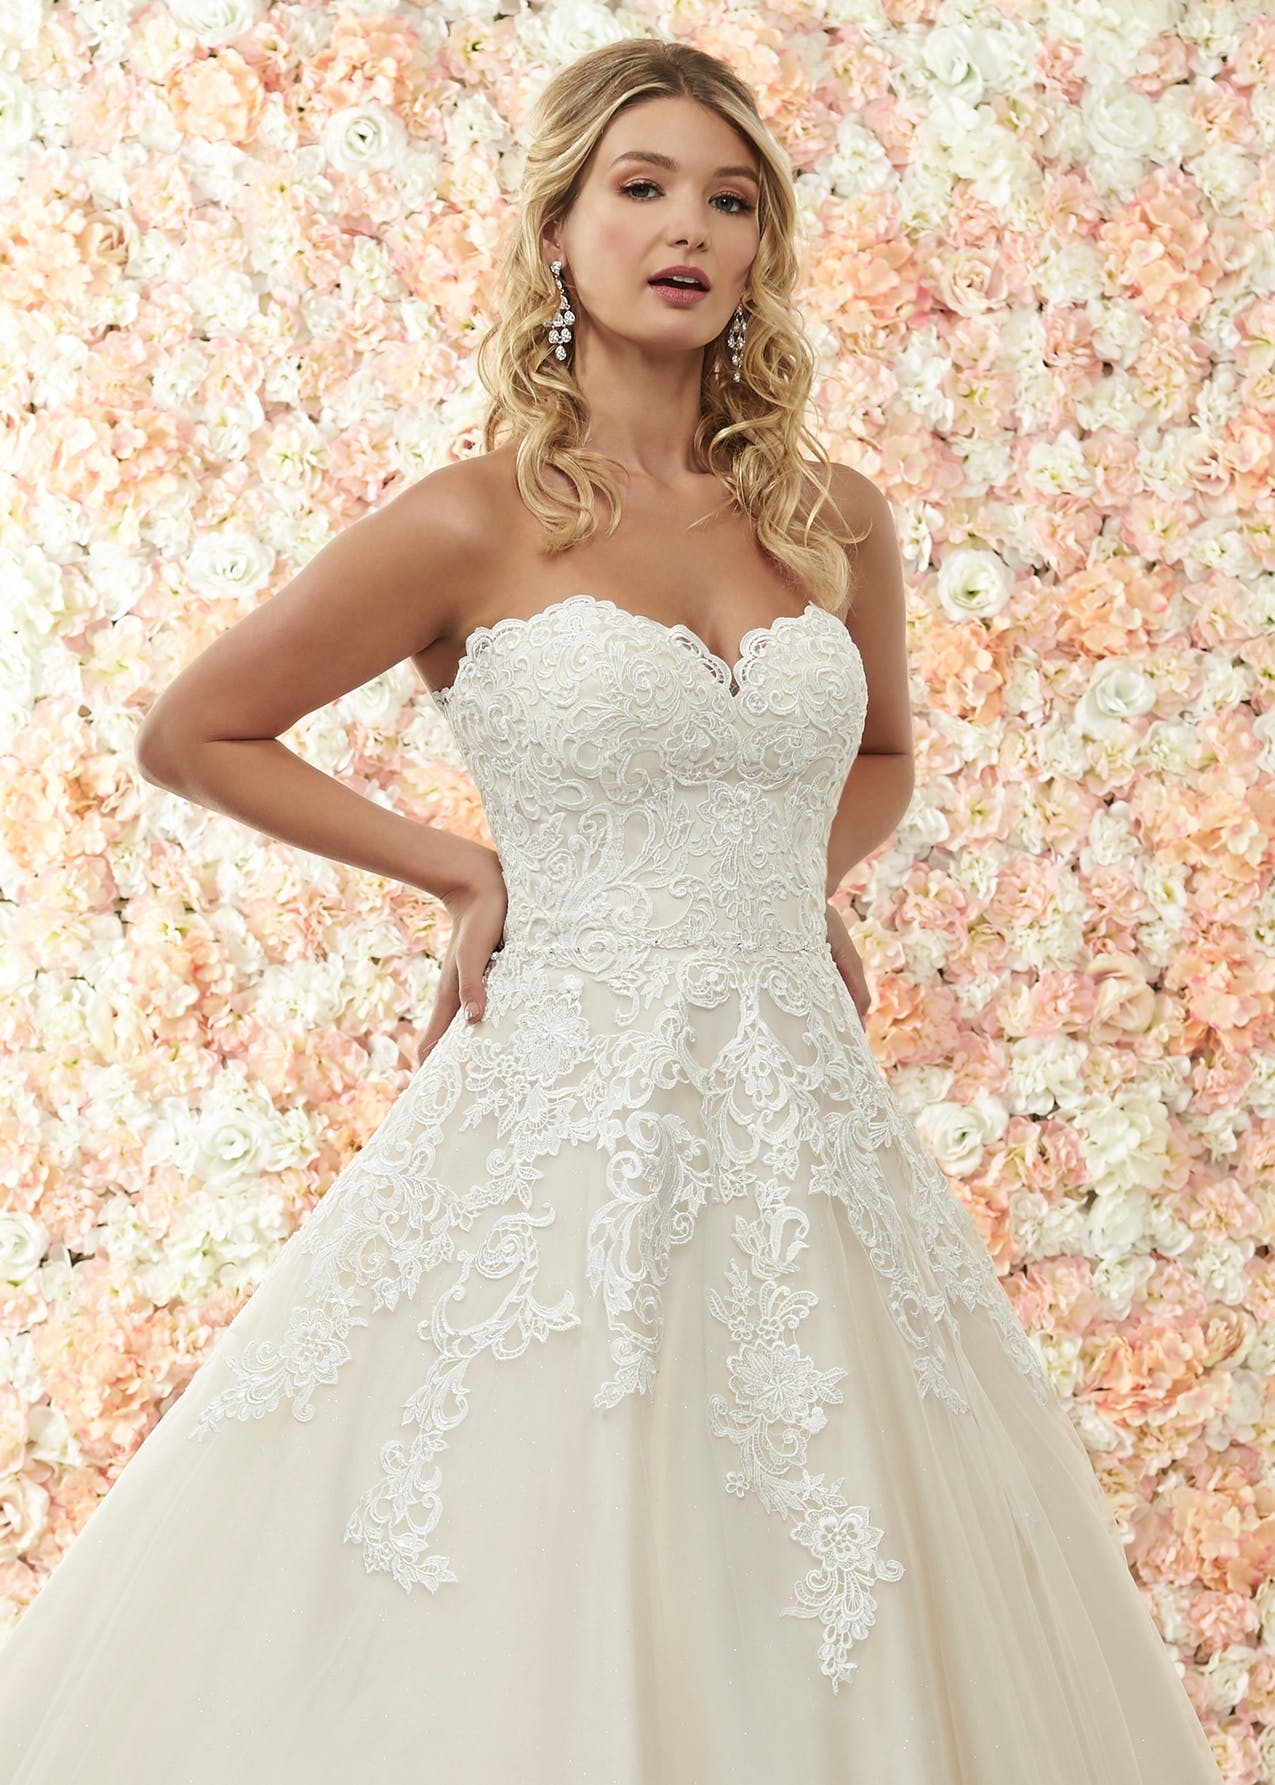 Alessandra - Beautiful ballgown with sweetheart neckline and full tulle skirt